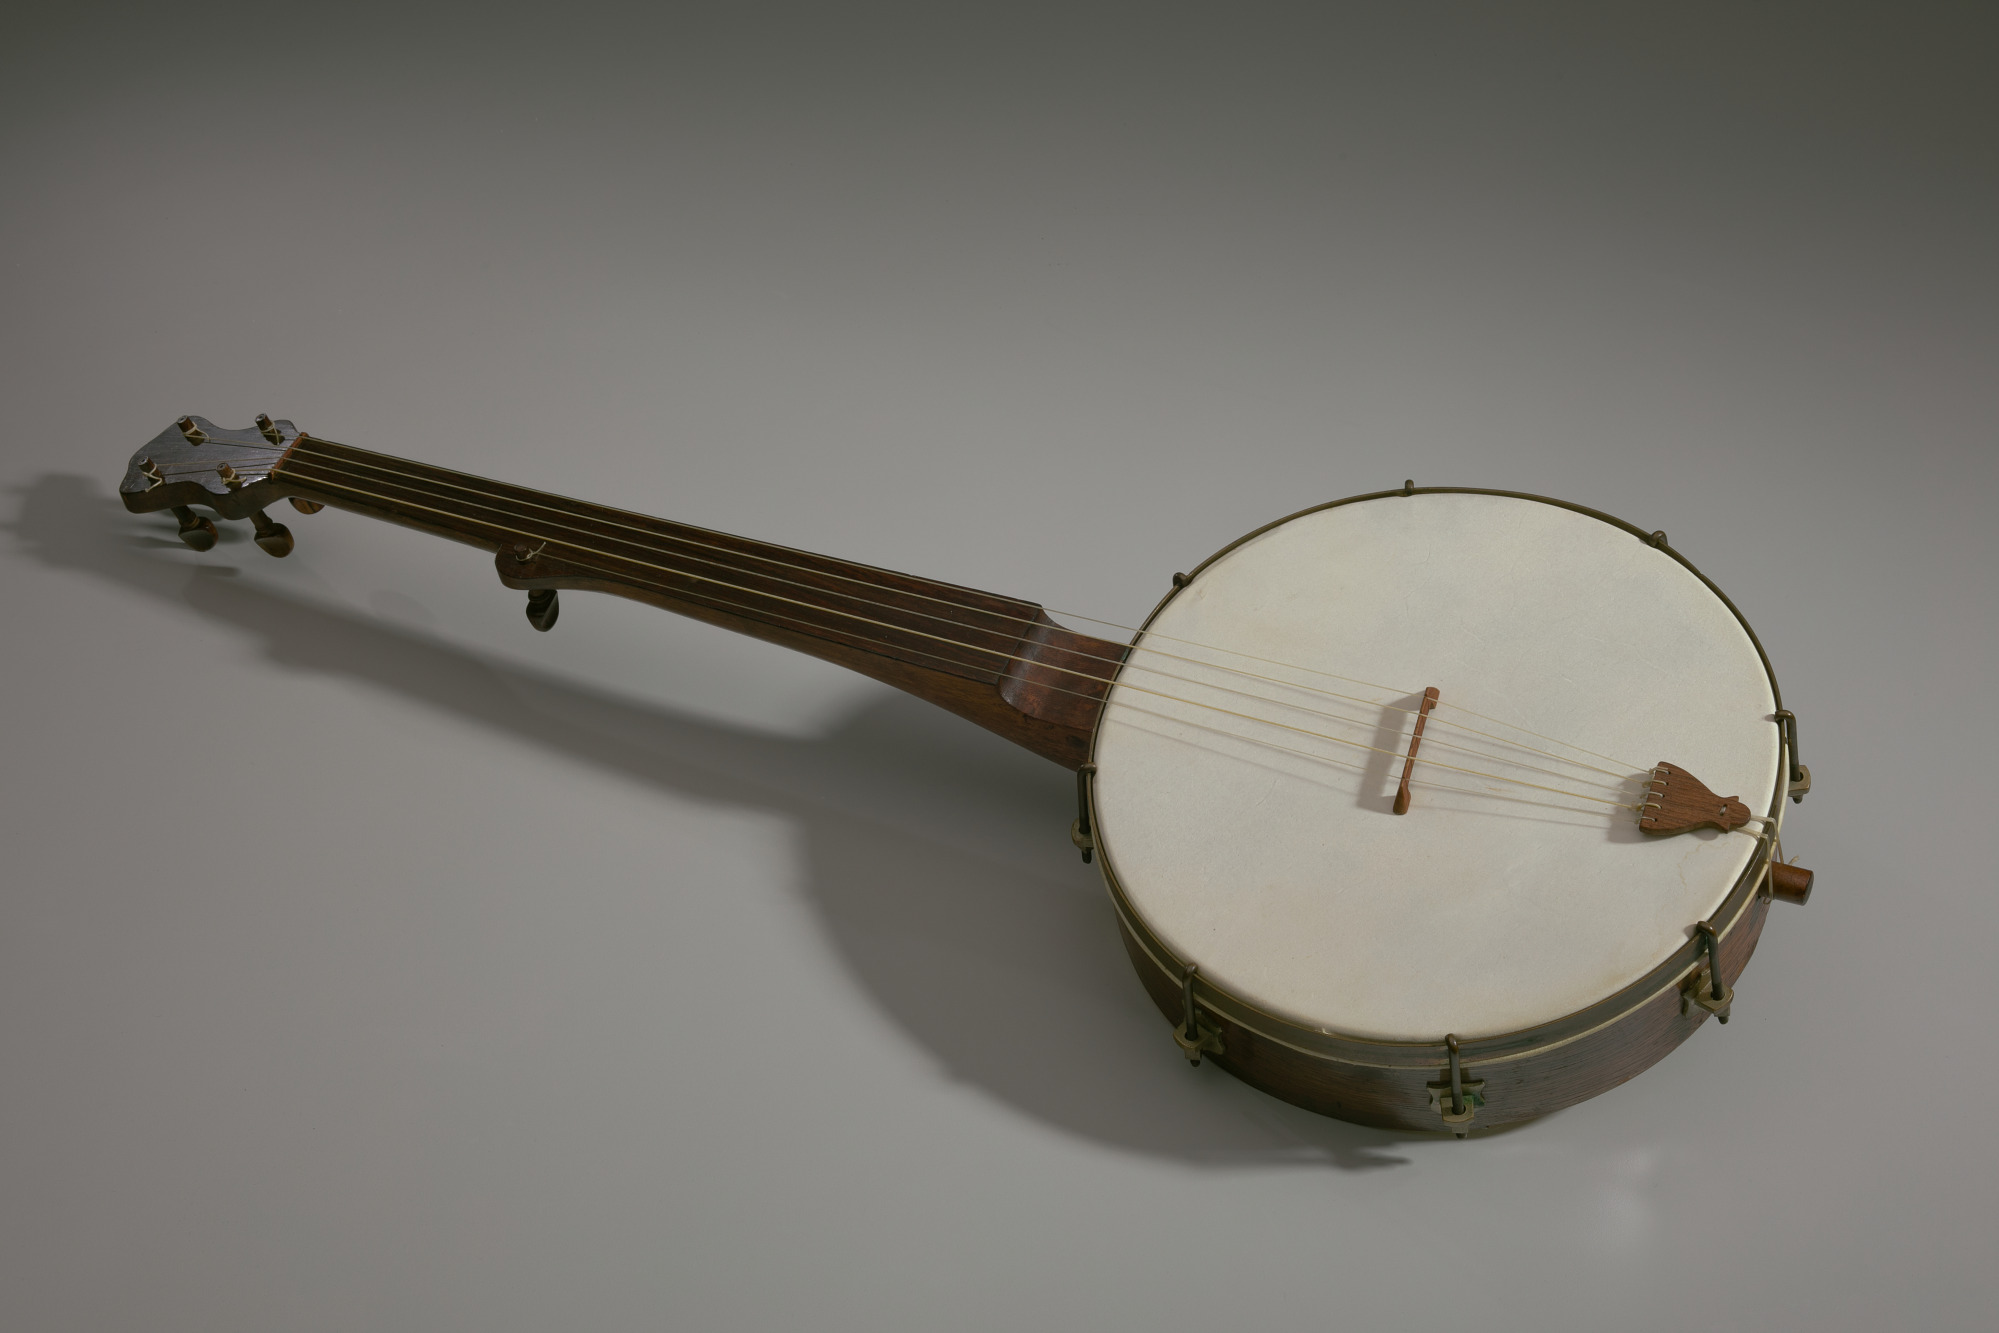 Banjo made in the style of William Esperance Boucher, Jr. - Image version 0